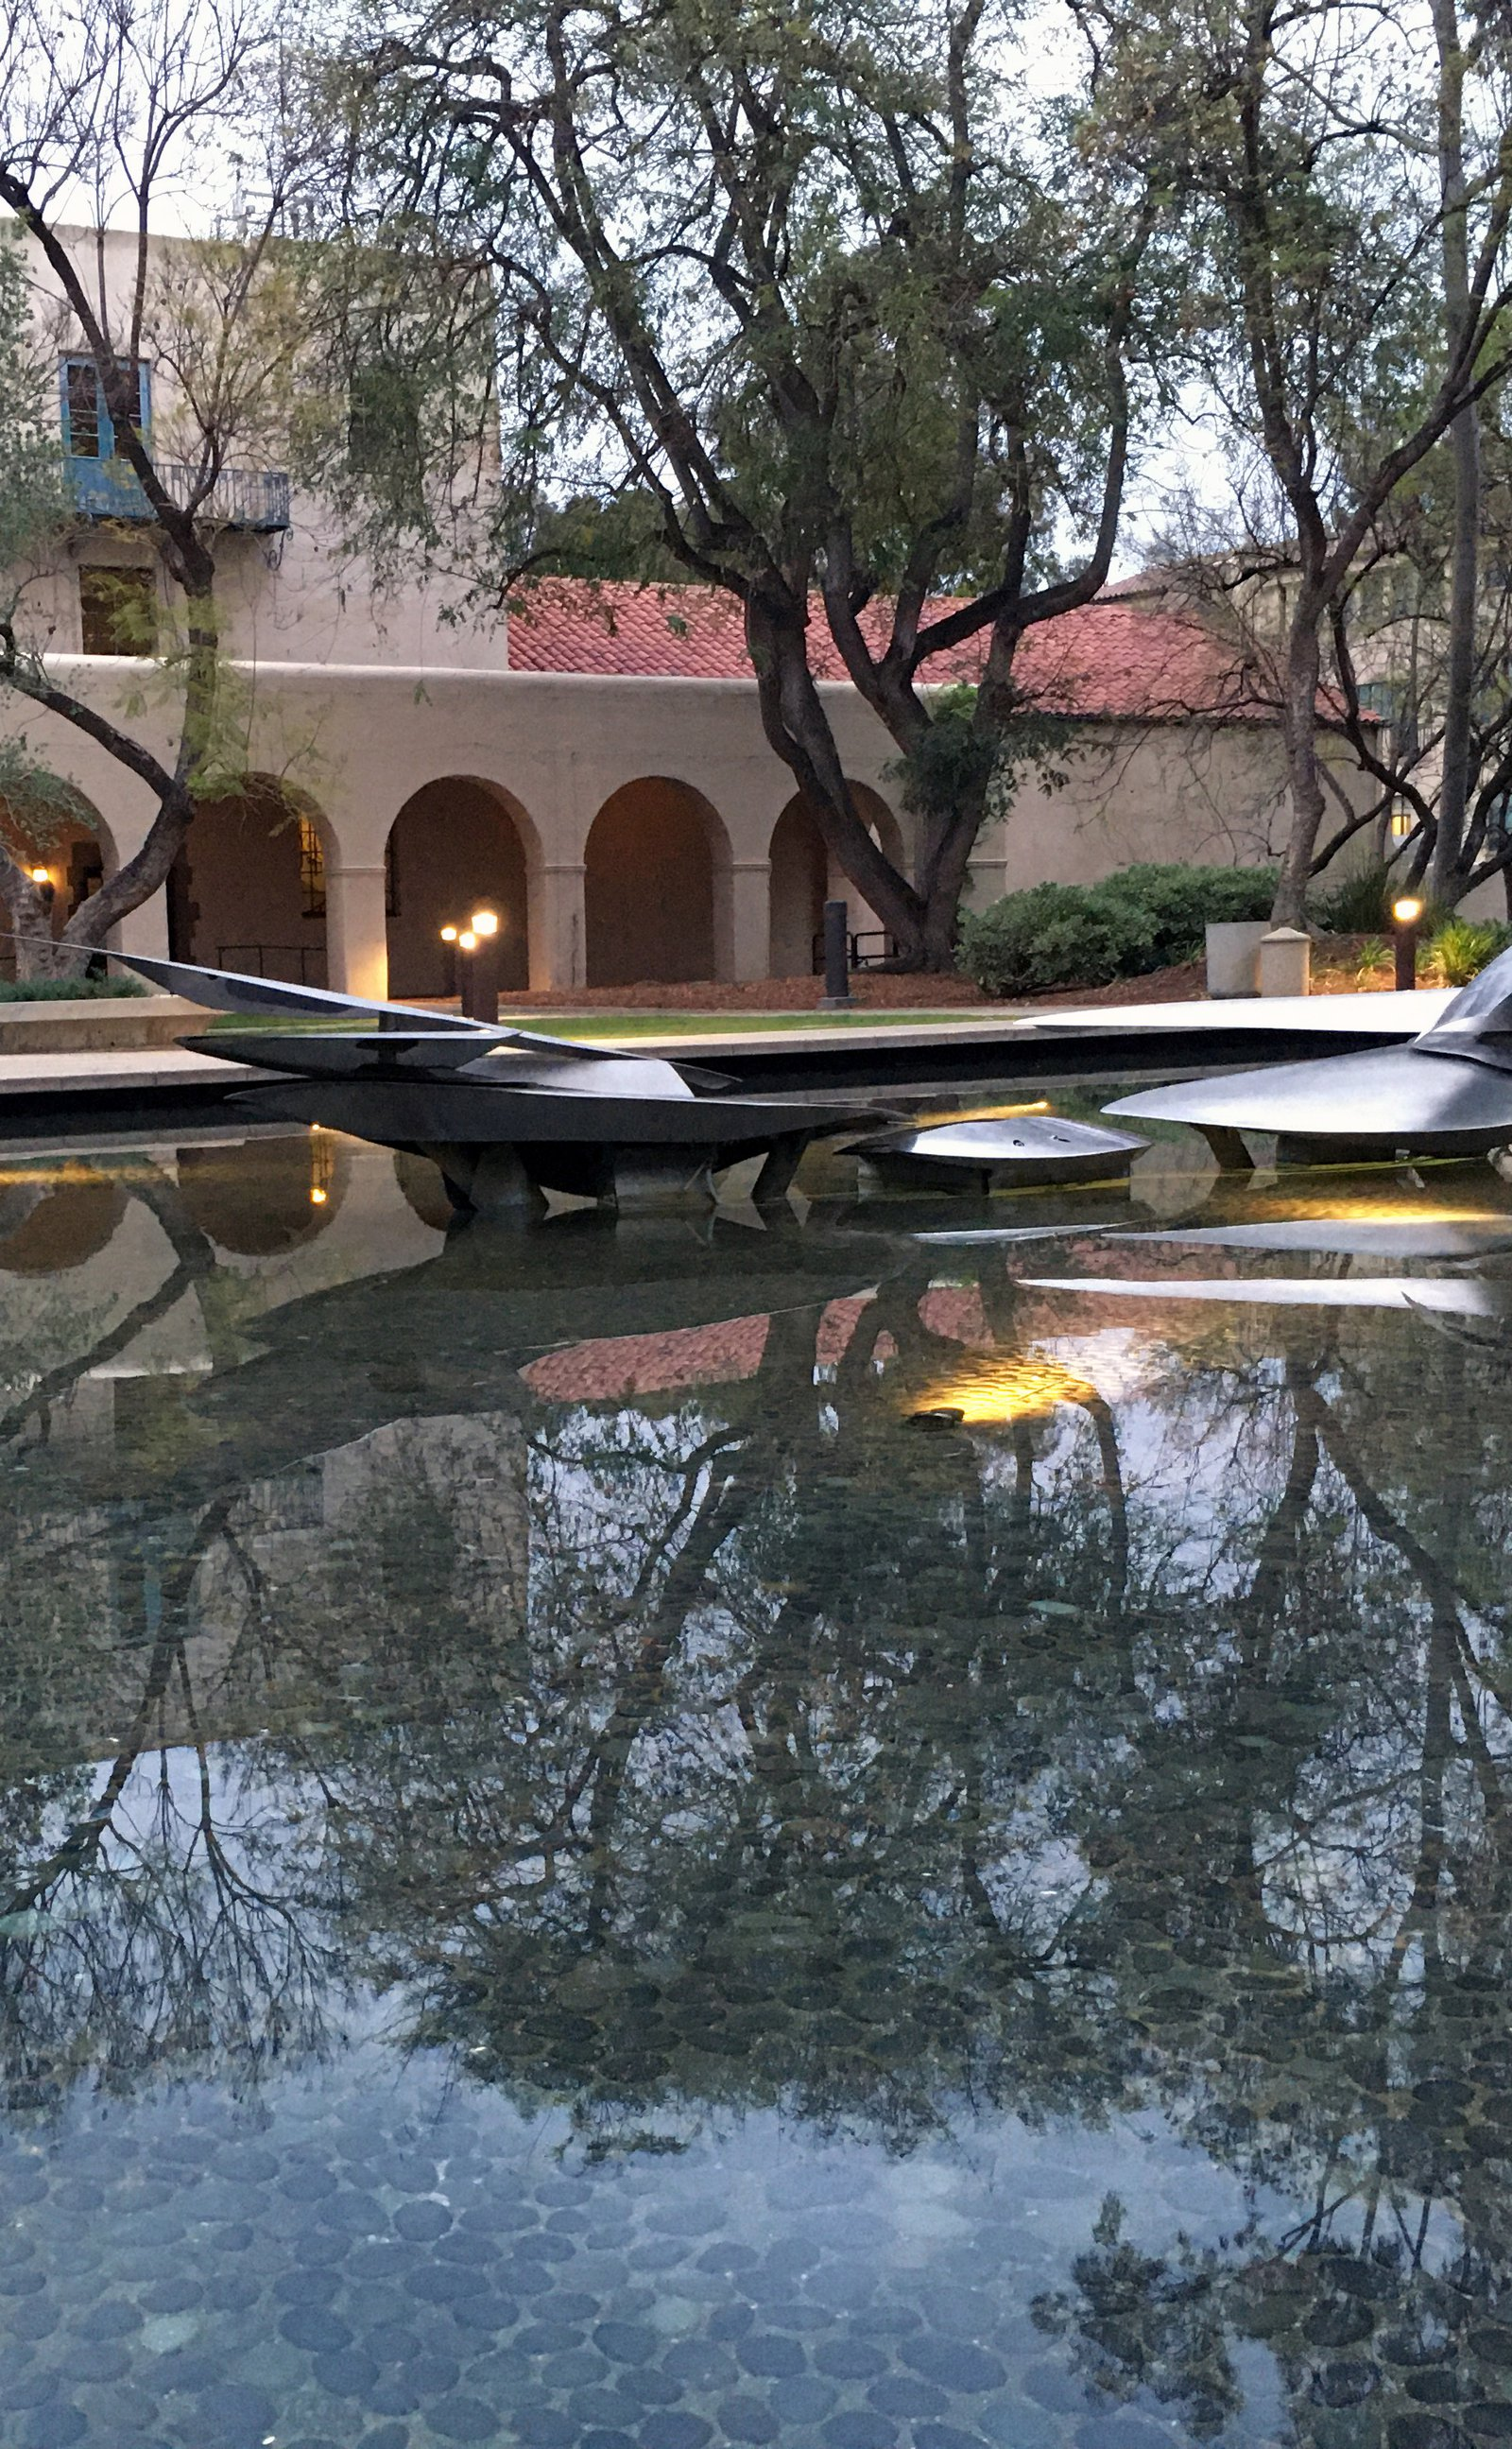 Part of the Water Forms sculpture by George Baker in an ornamental pool on Caltech's campus with trees and Dabney Hall in the background